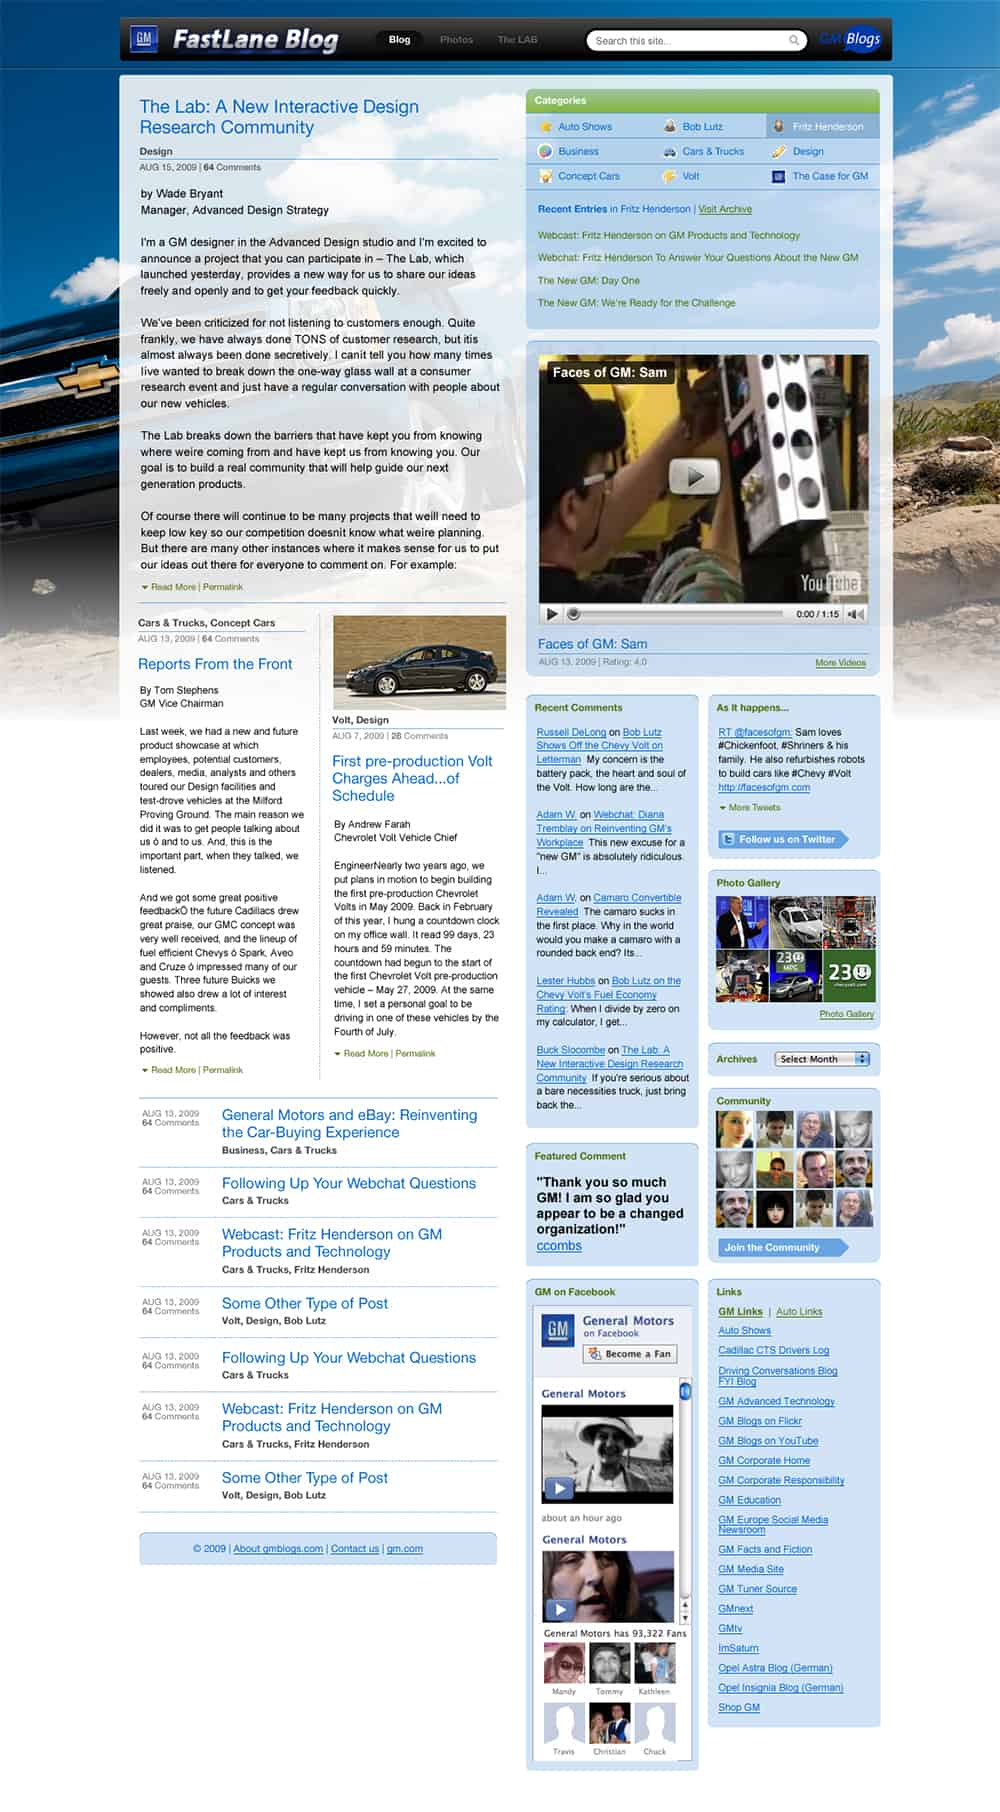 GM Fastlane Blog Design